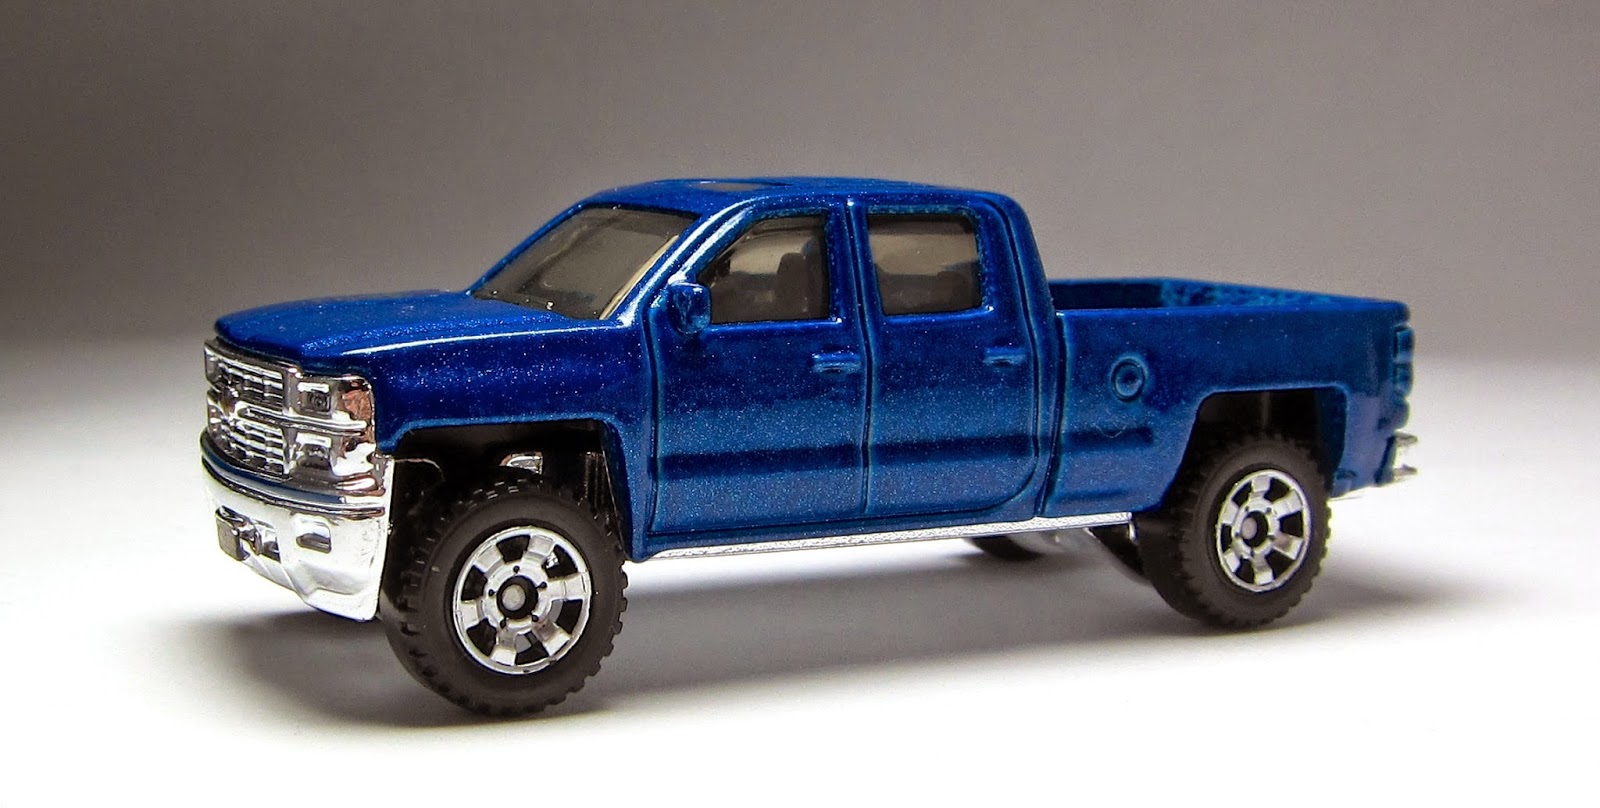 Chevy Silverado Rally Edition Car Lamley Group: First Look: Matchbox 2014 Chevy ...